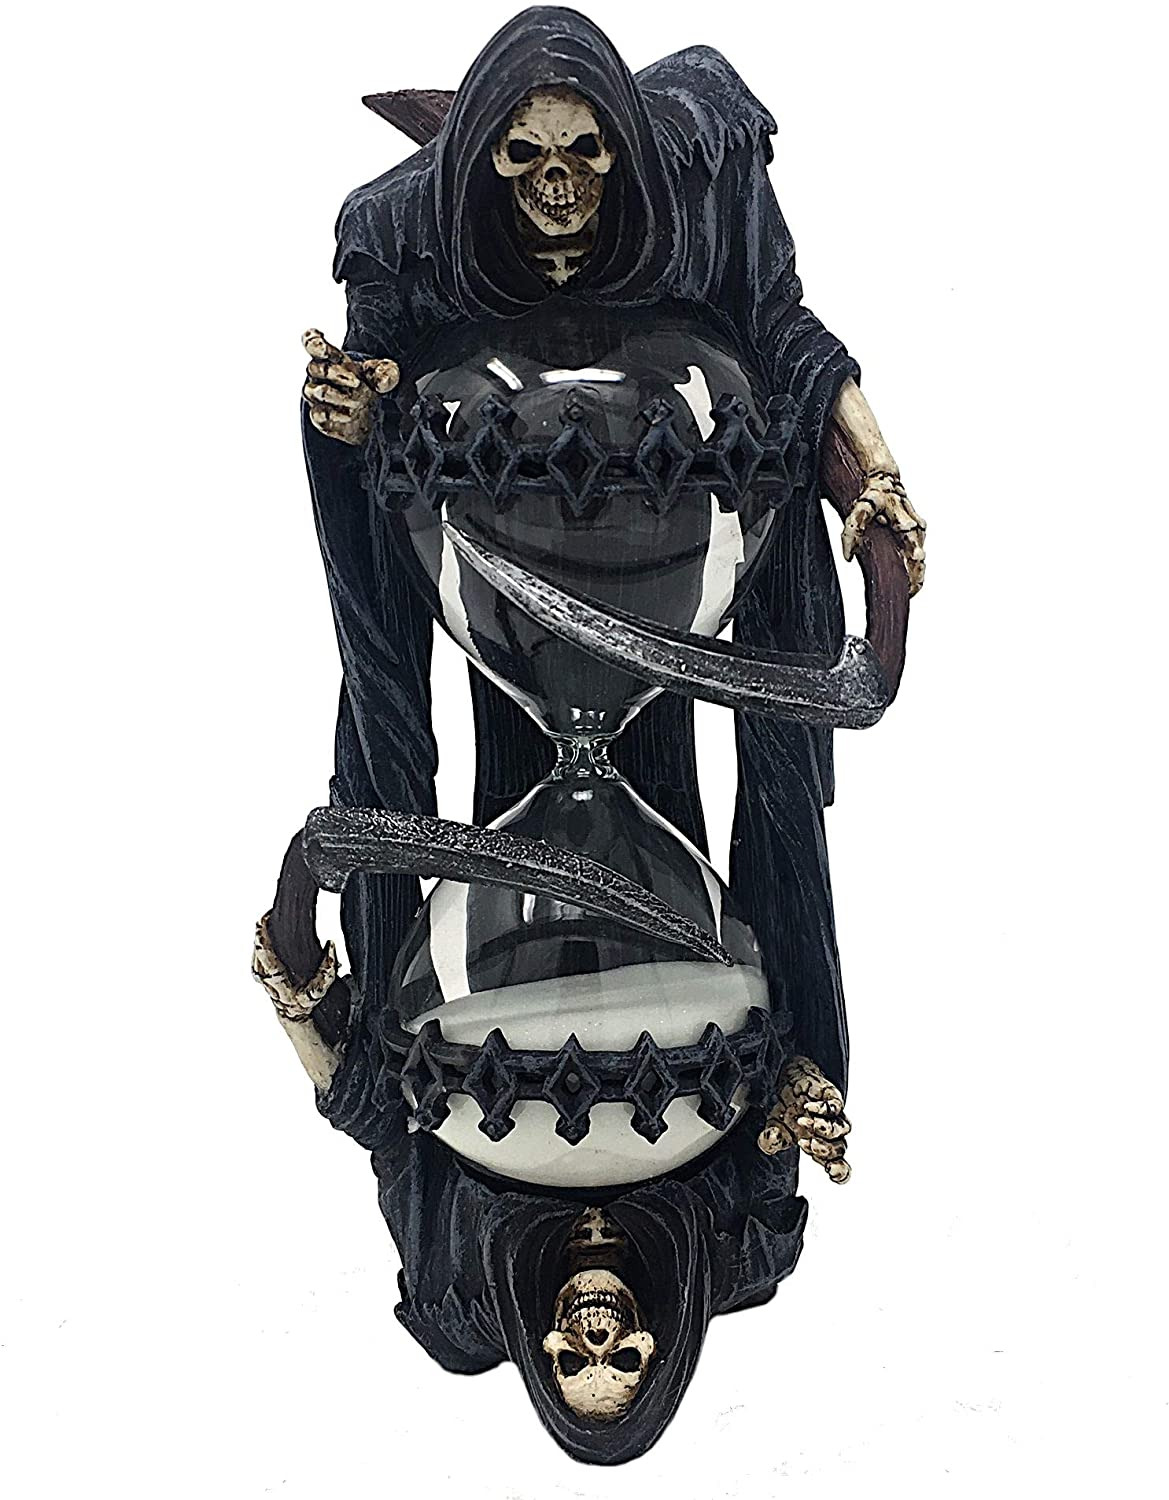 Wicked Hourglass Luxury Mayer Chess Hourglass Grim Reaper by Anne Stokes Clock